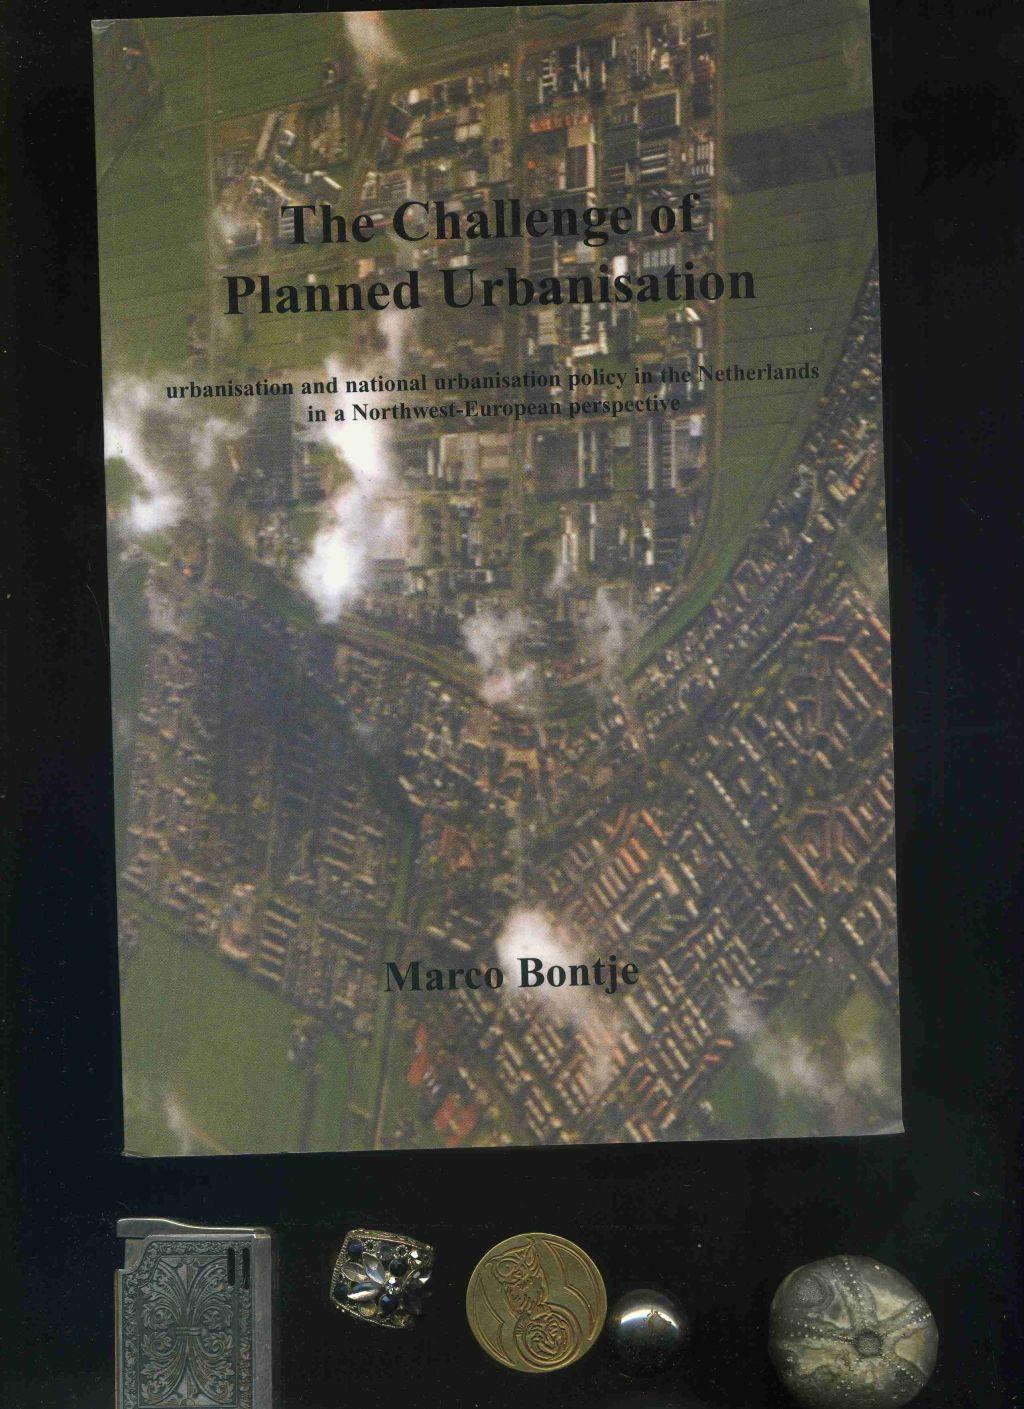 Challenge Of Planned Urbanisation: Urbanisation And national urbanisation policy in the Netherlands in a Northwest European perspective. Signiert auf dem Titelblatt vom Autor. - Bontje, Marco